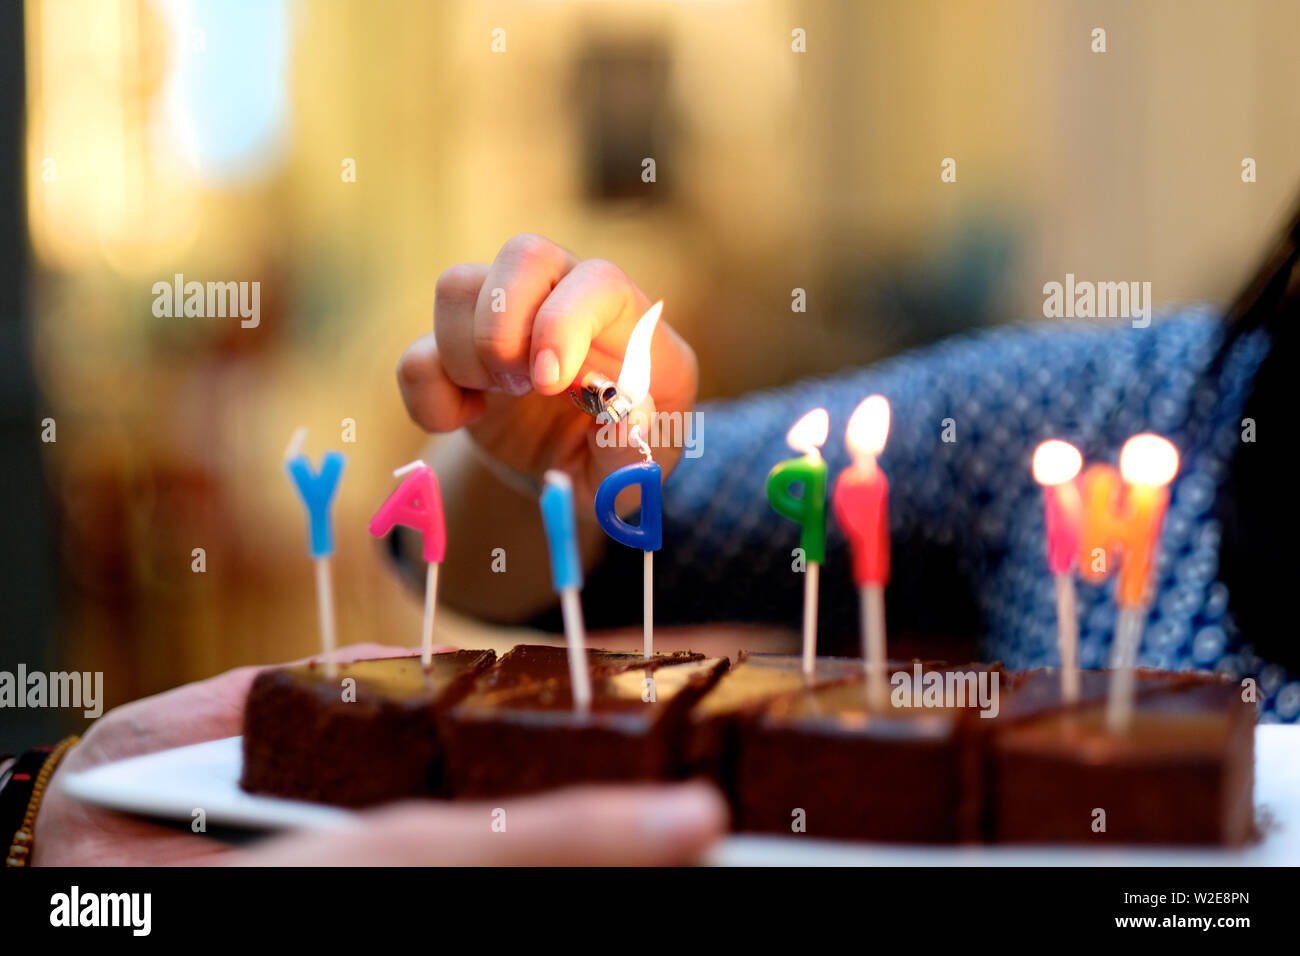 The girl is preparing for the holiday, decorating cakes. - Stock Image